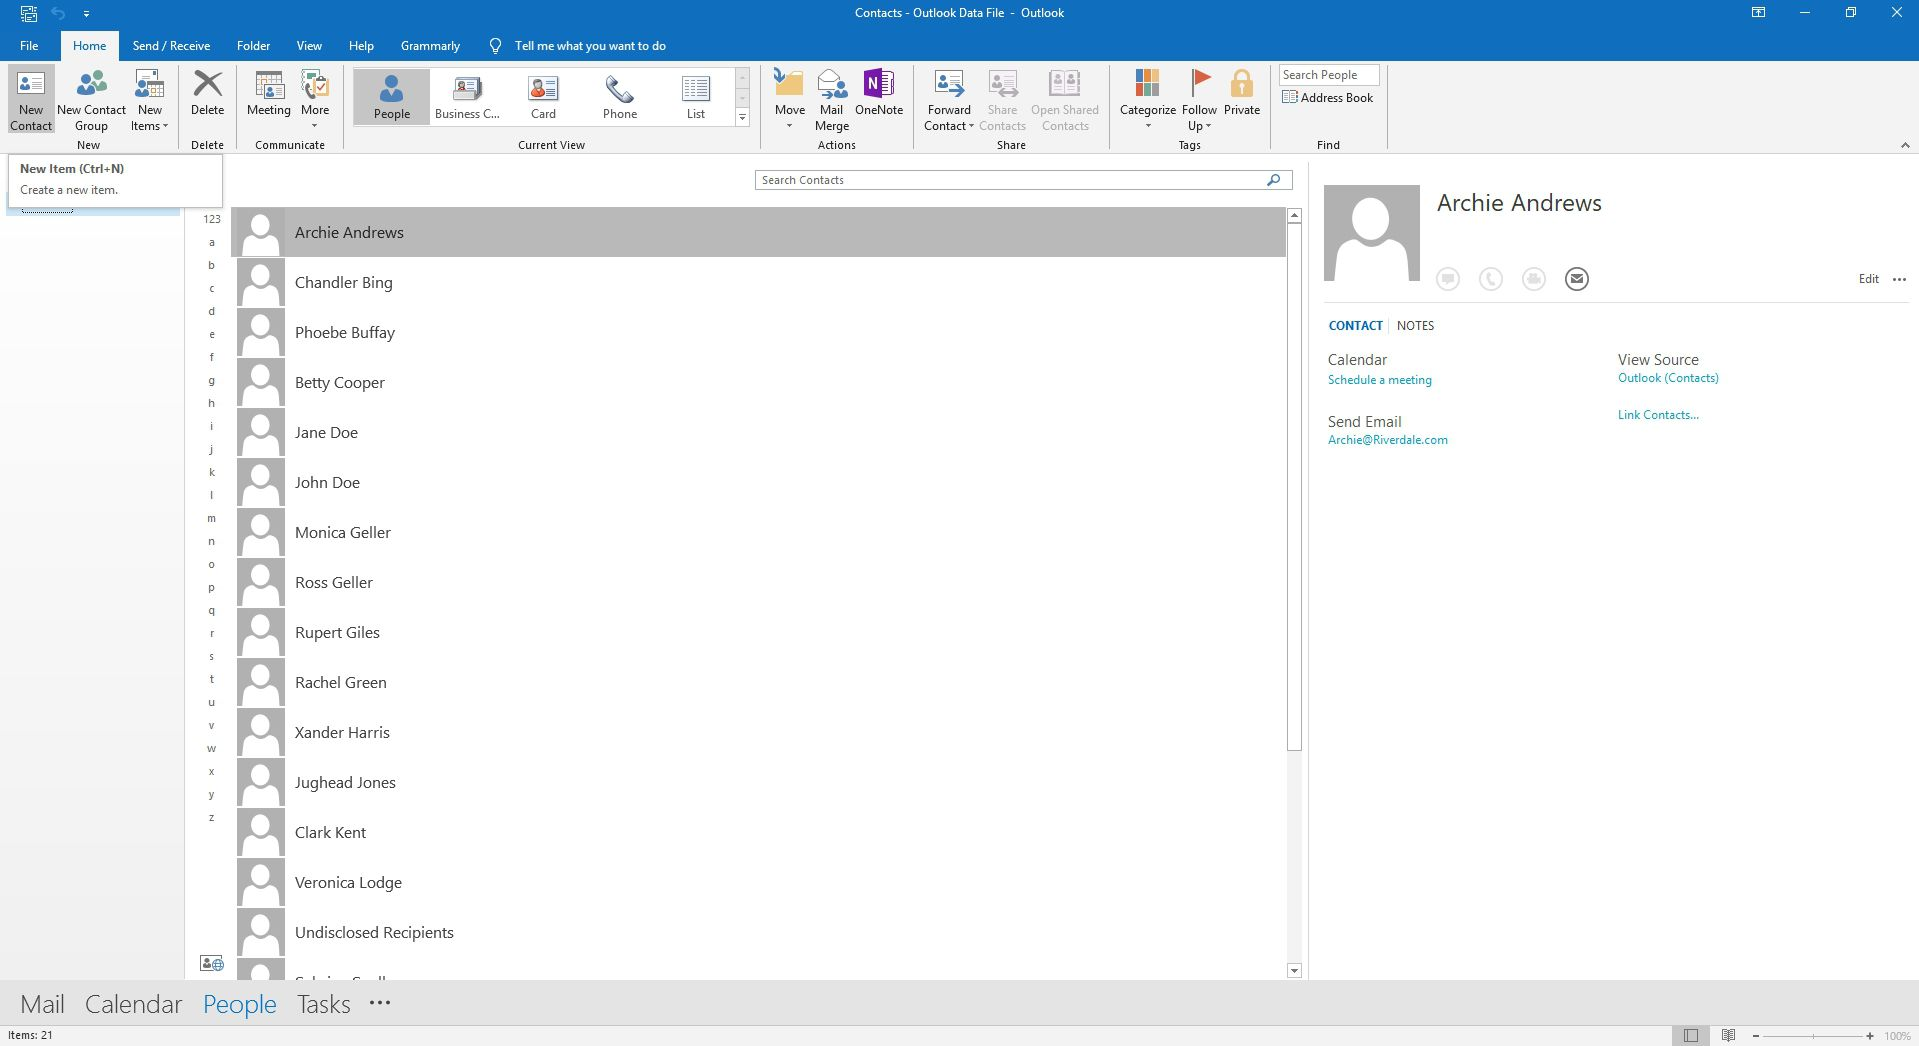 Selecting the new contact option in Outlook